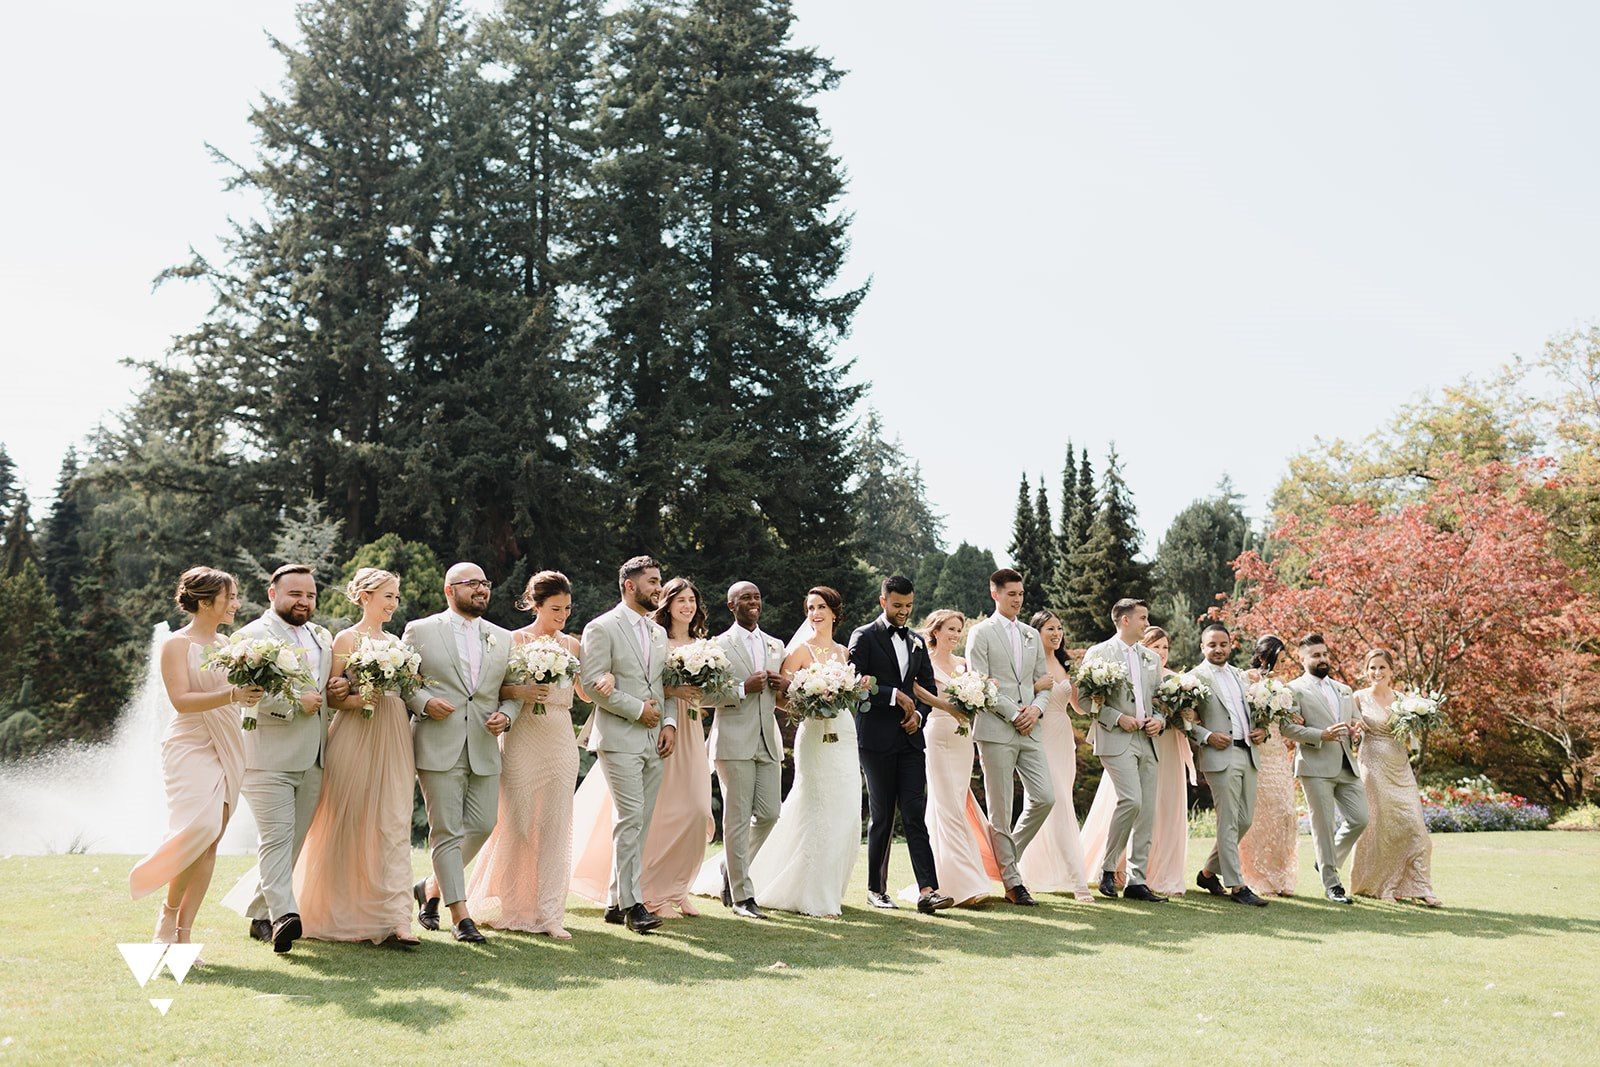 HeraStudios_Selects_JillDavid_Wedding_0194.jpg